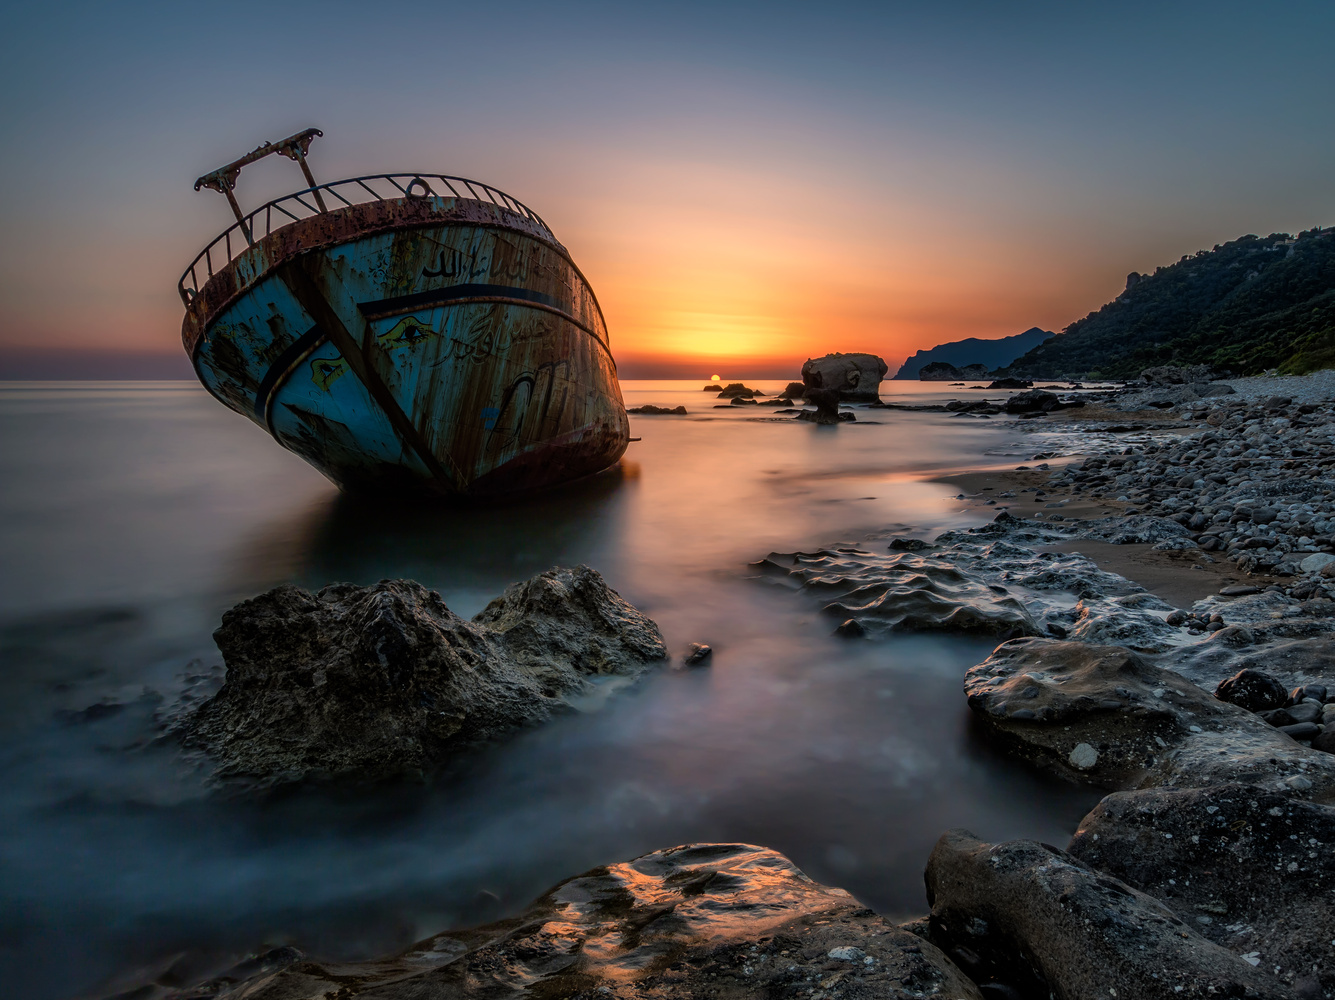 Another day has gone by Michele Buttazzoni